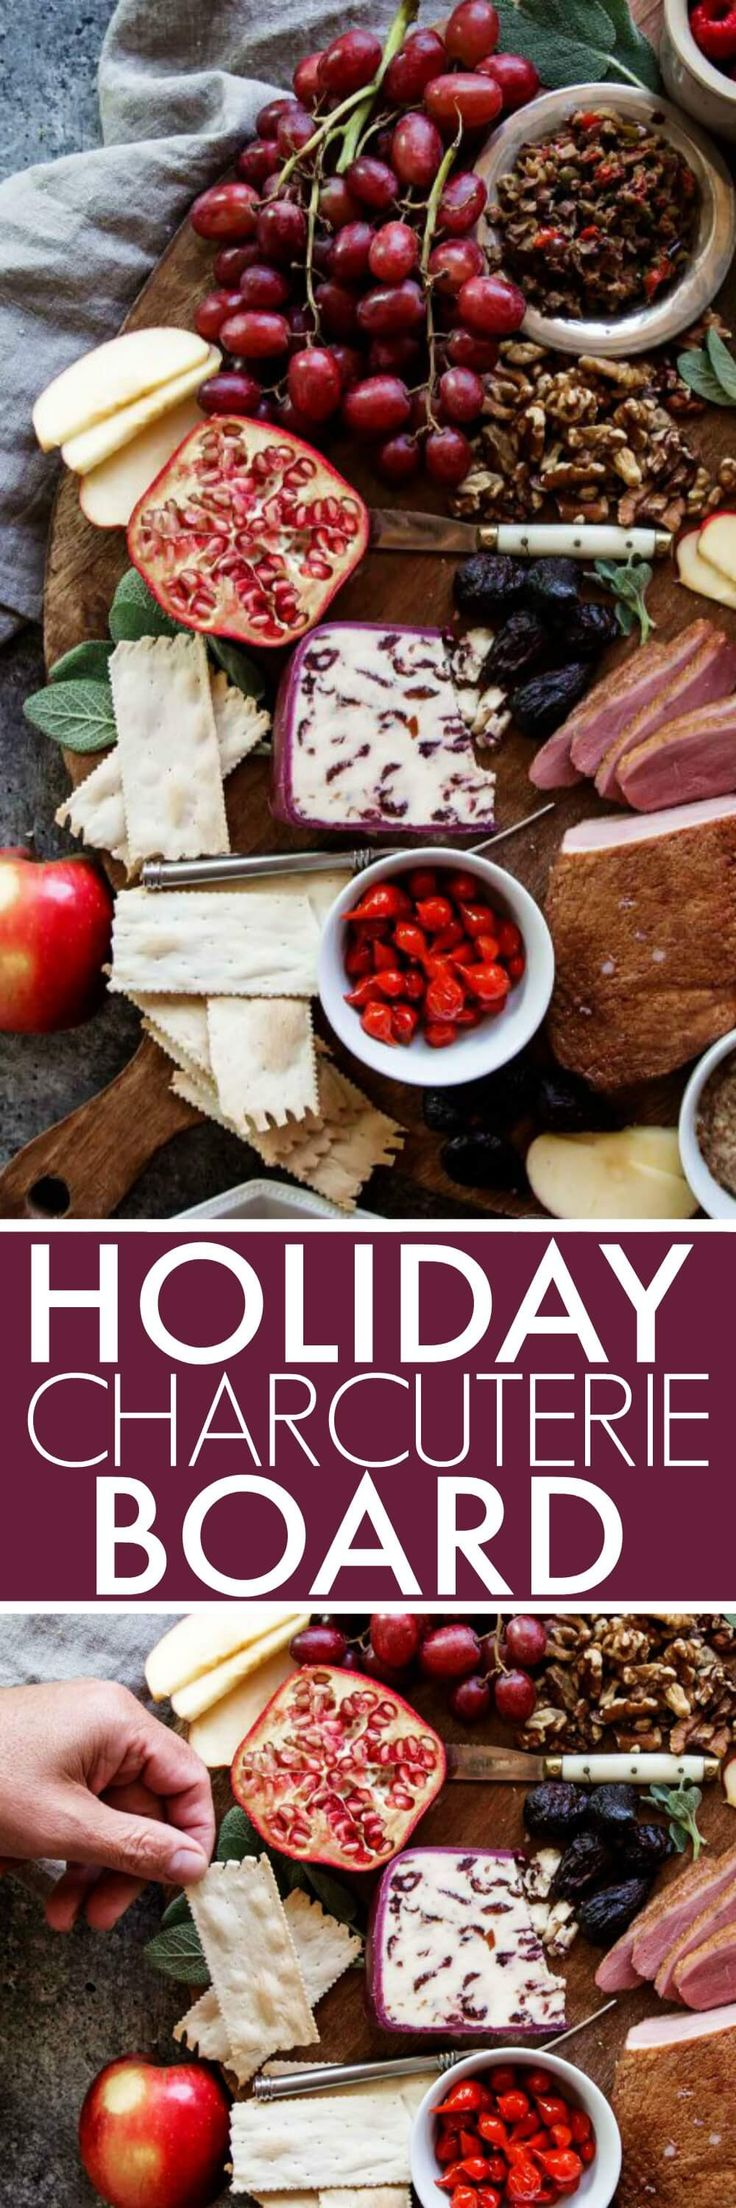 Learn how to create the perfect Holiday Charcuterie Board in just four simple steps. Assemble a beautiful and elegant spread with fresh fruits, cheeses and fresh herbs. #charcuterie #cheeseboard #appetizer #holidayappetizer via @platingspairing